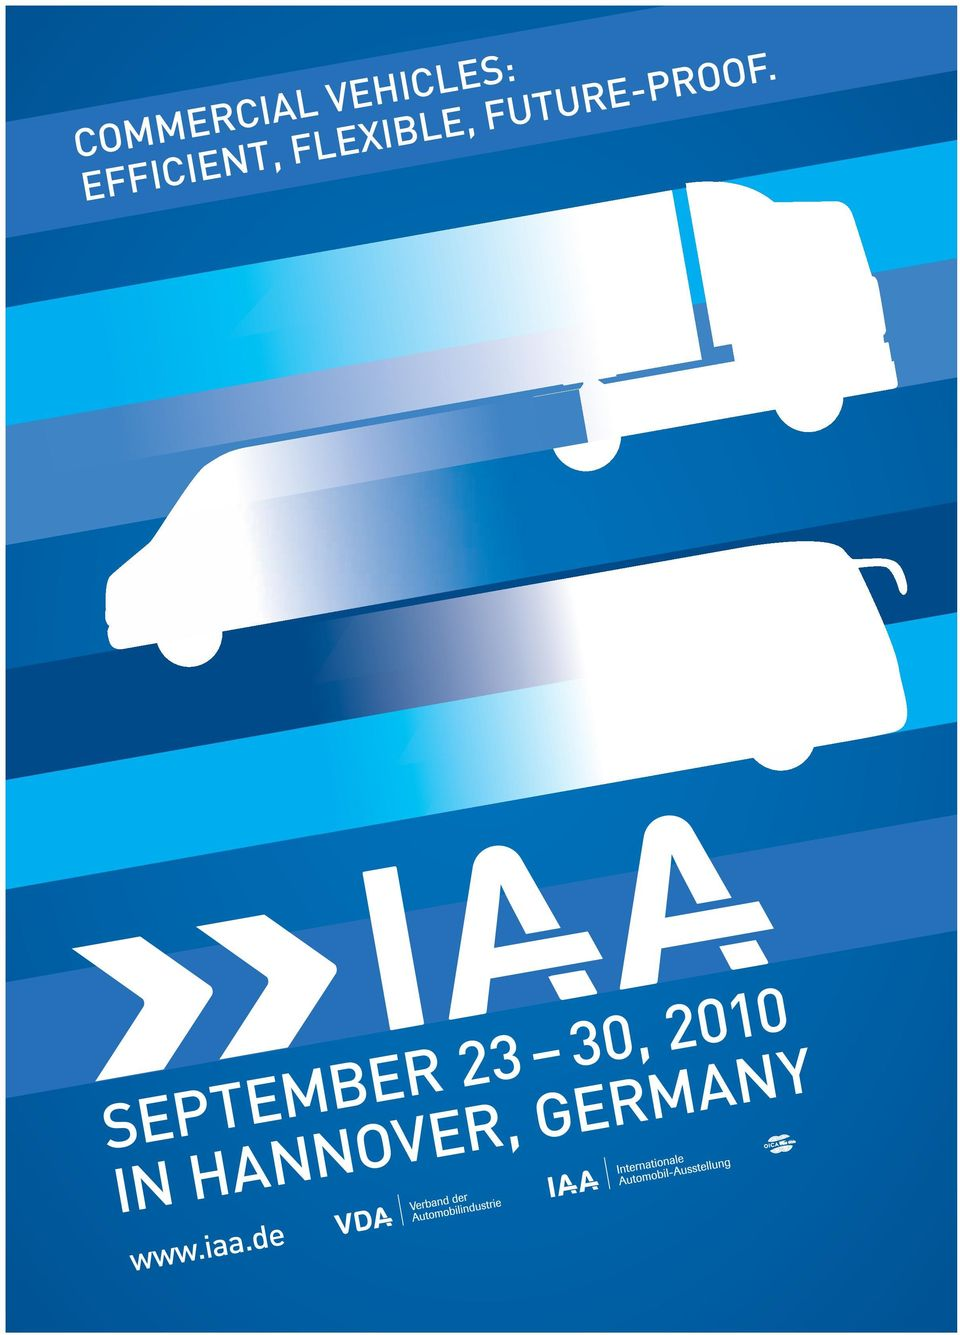 FUTURE-PROOF.